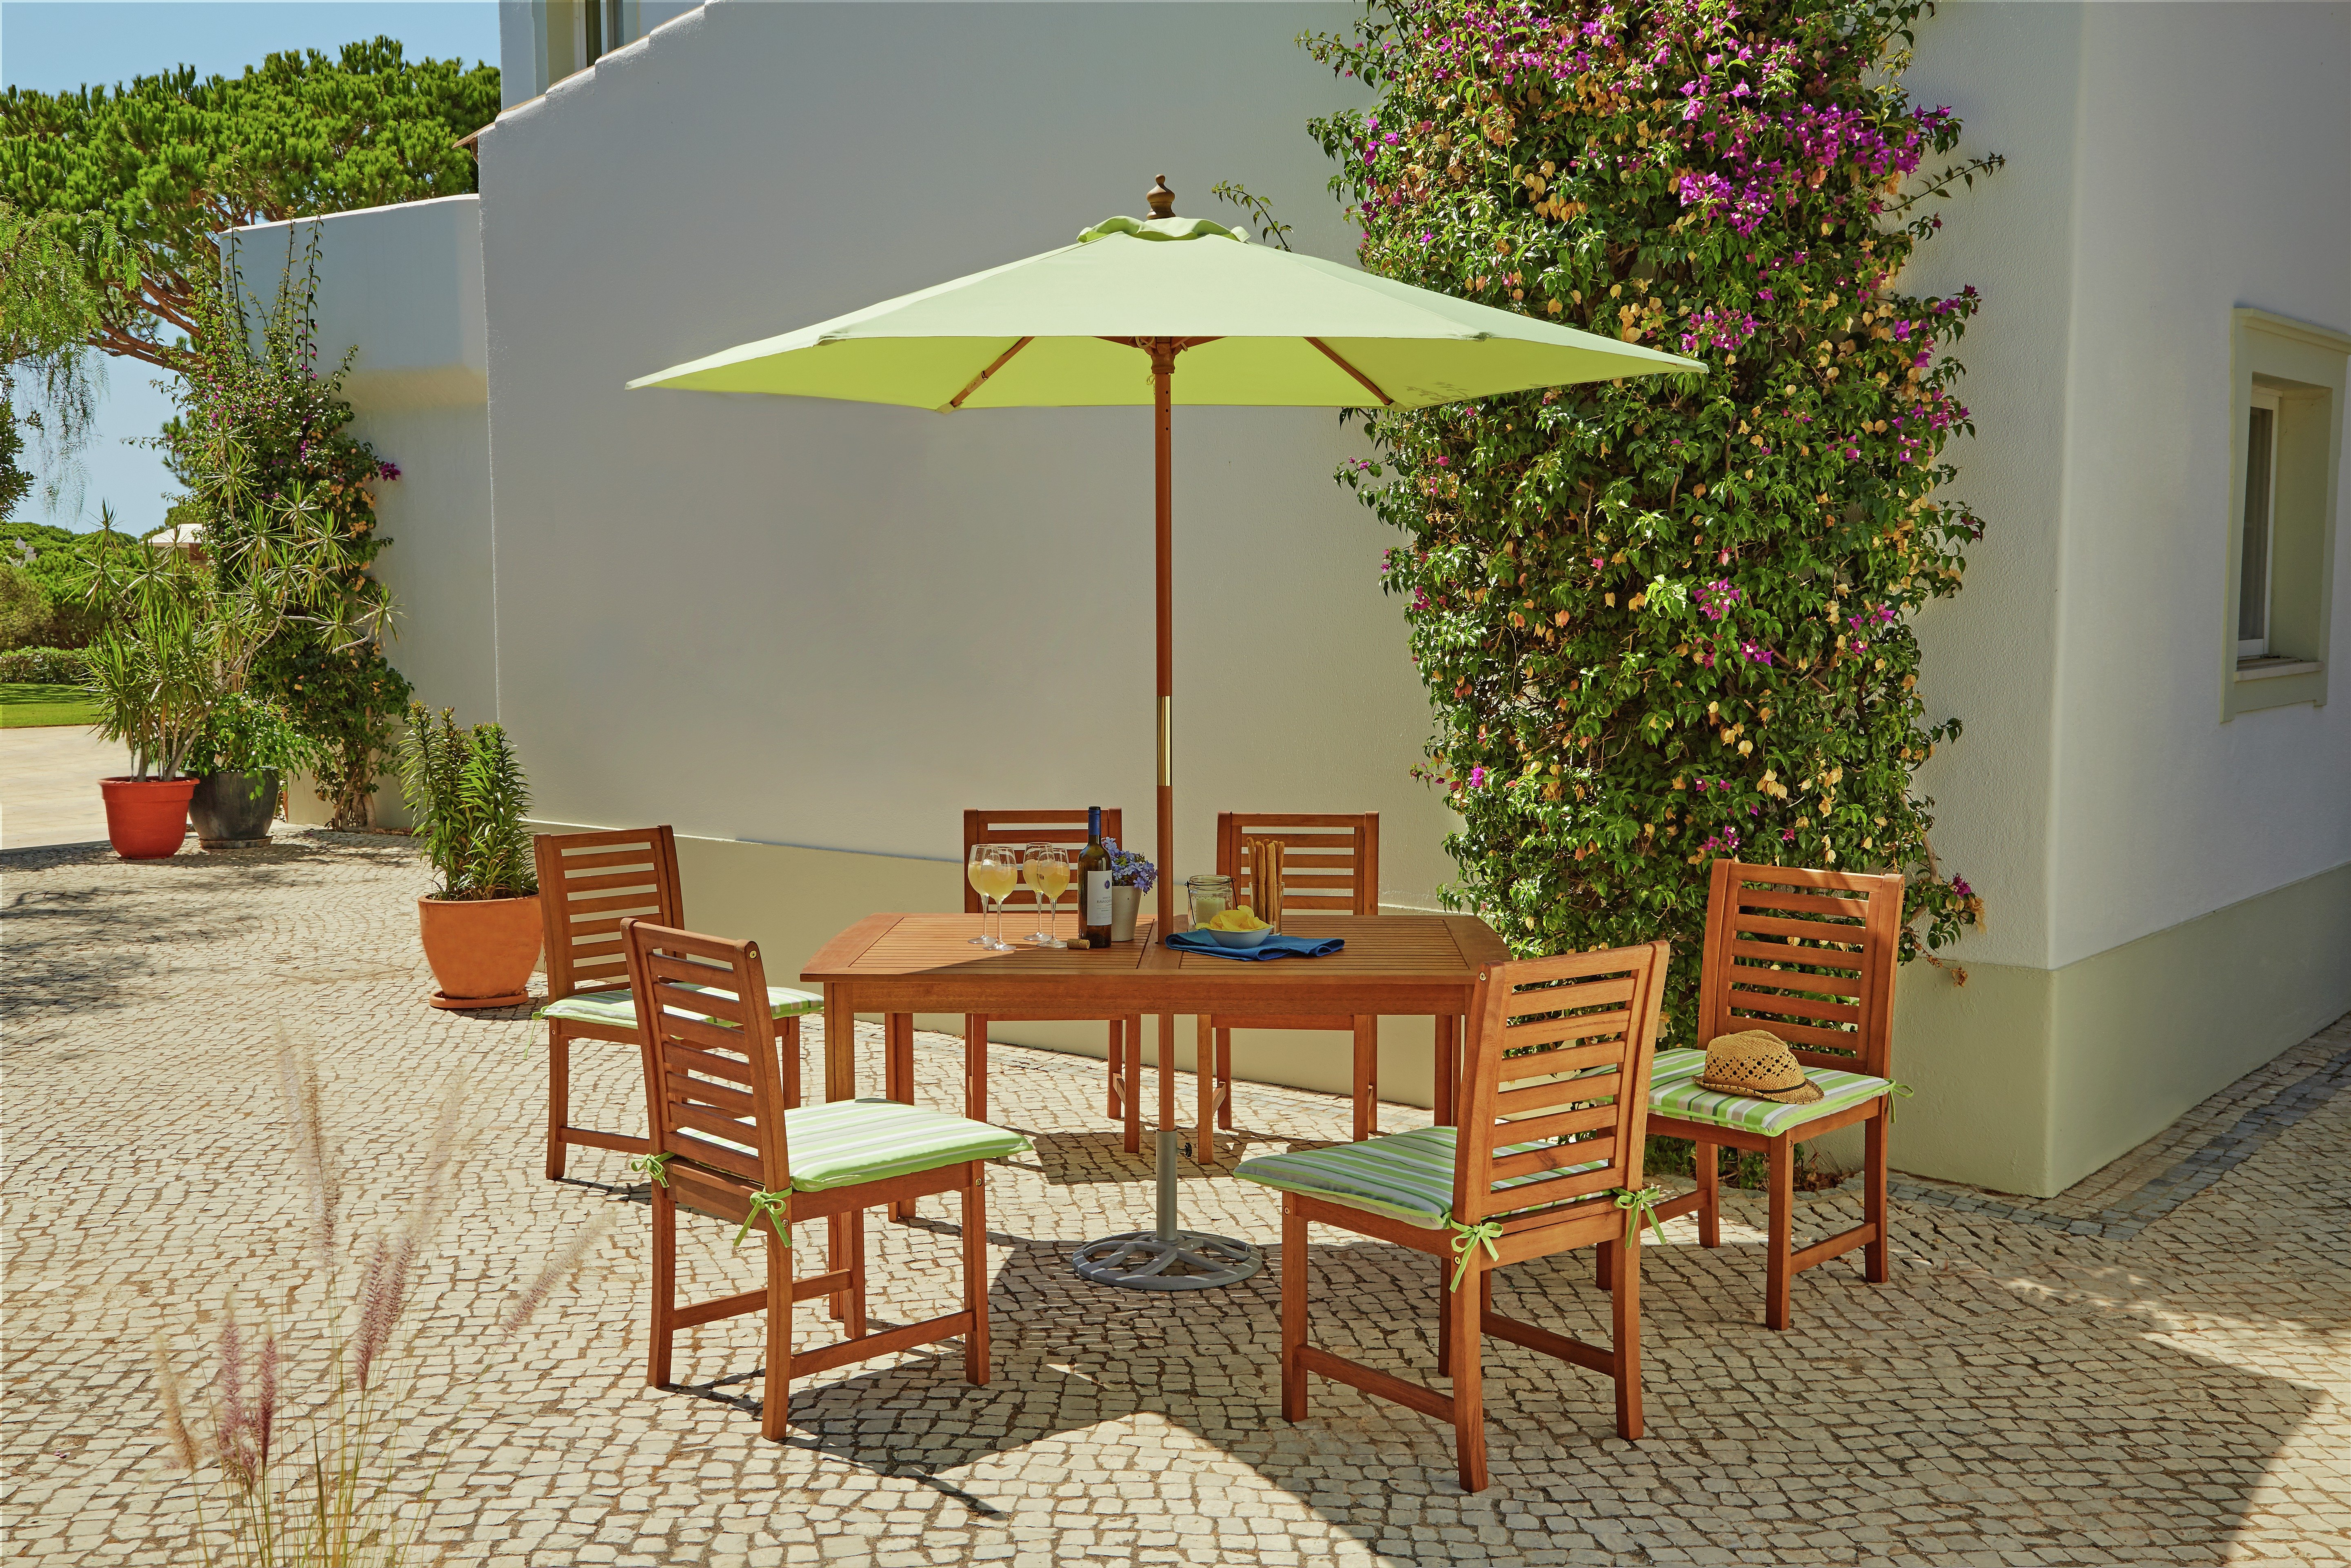 Garden Furniture Sets Uk buy collection madison 6 seater wooden patio set - green at argos